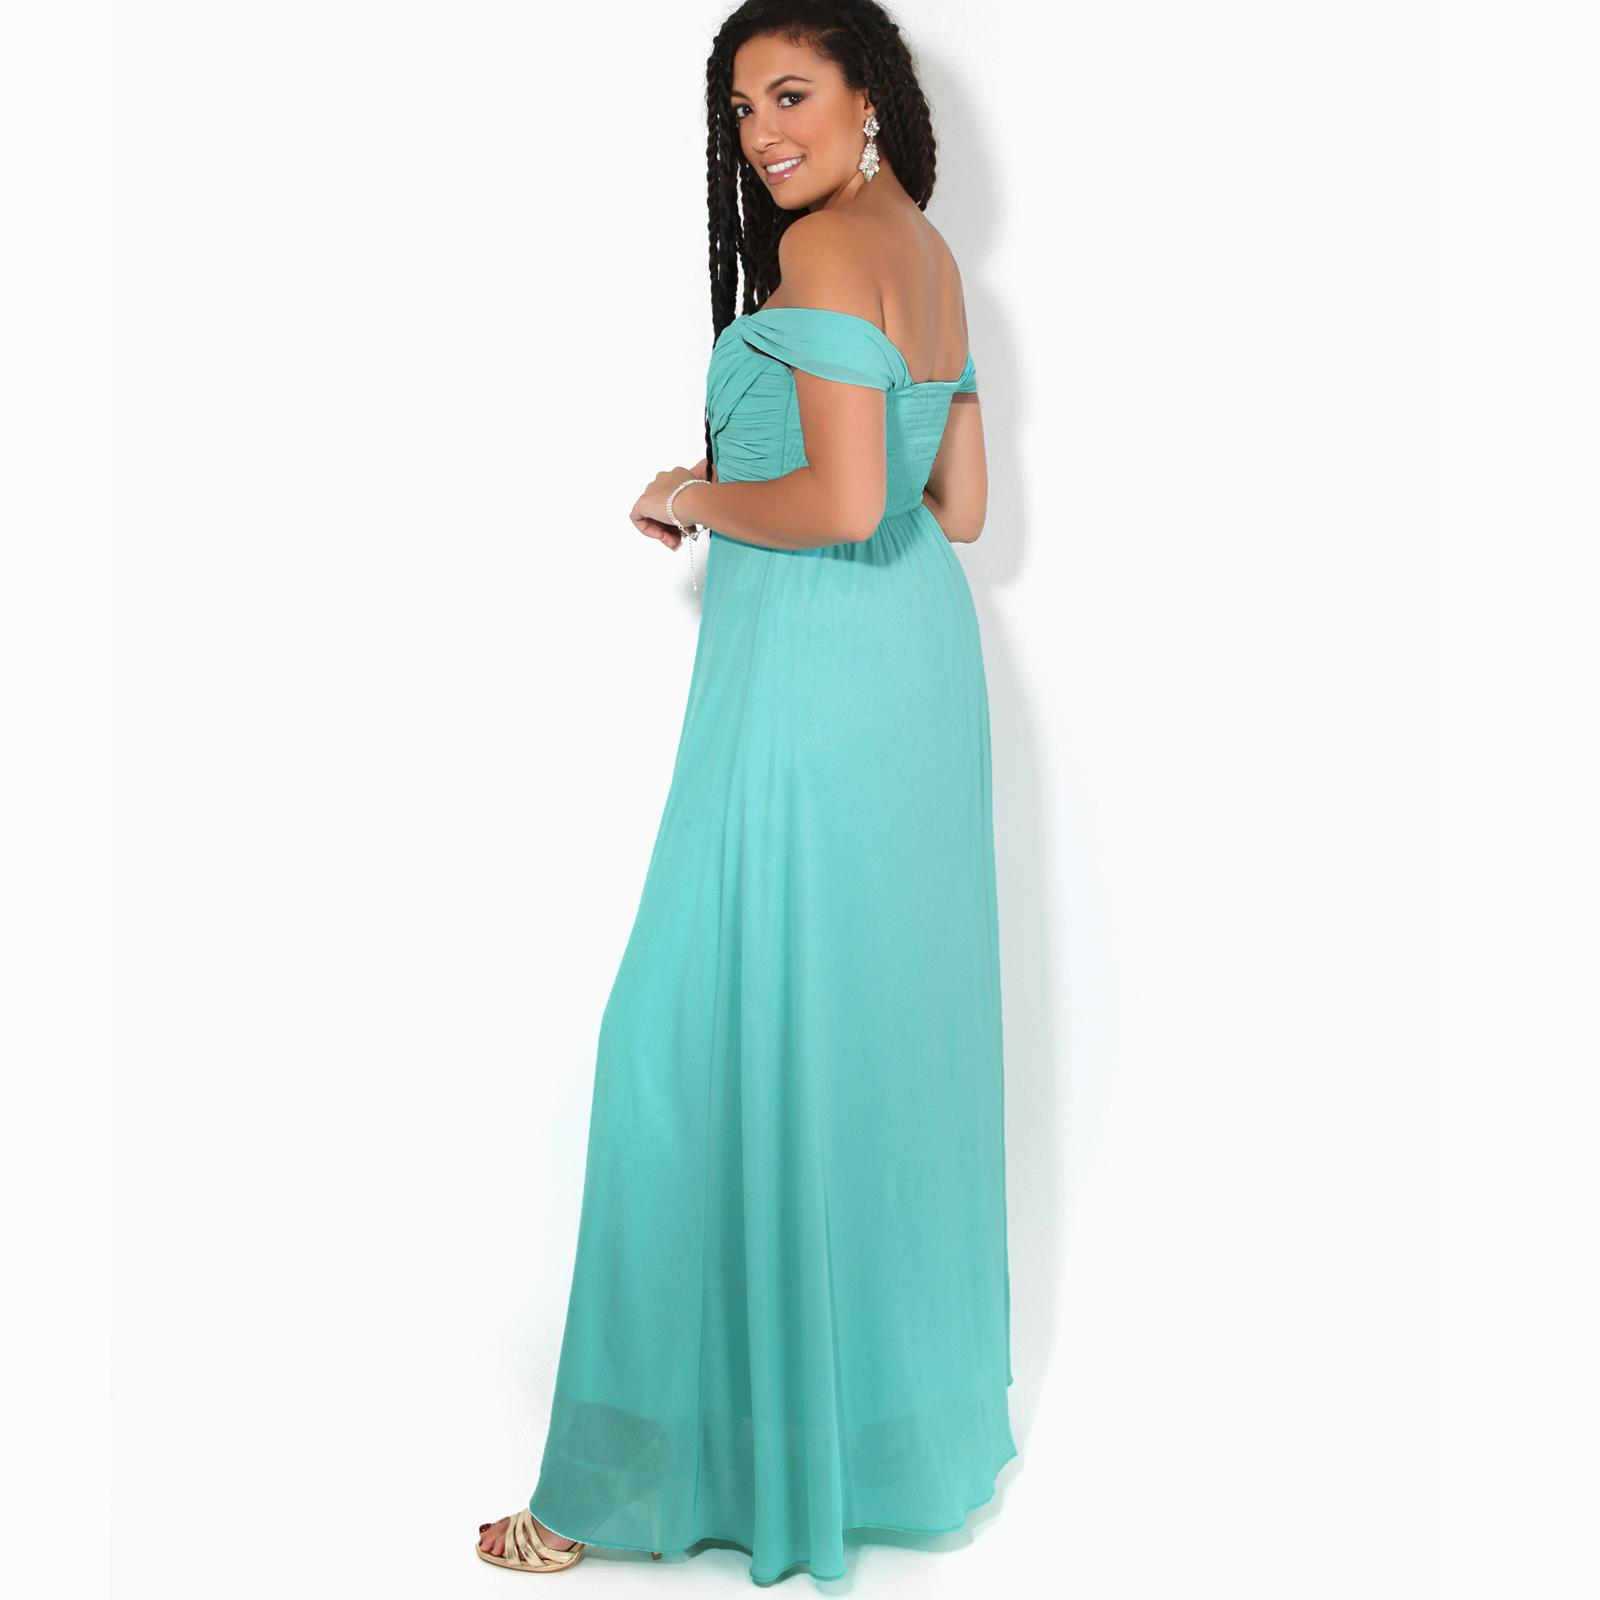 Womens-Formal-Evening-Wedding-Maxi-Prom-Dress-Long-On-Off-Shoulder-Ball-Gown thumbnail 57